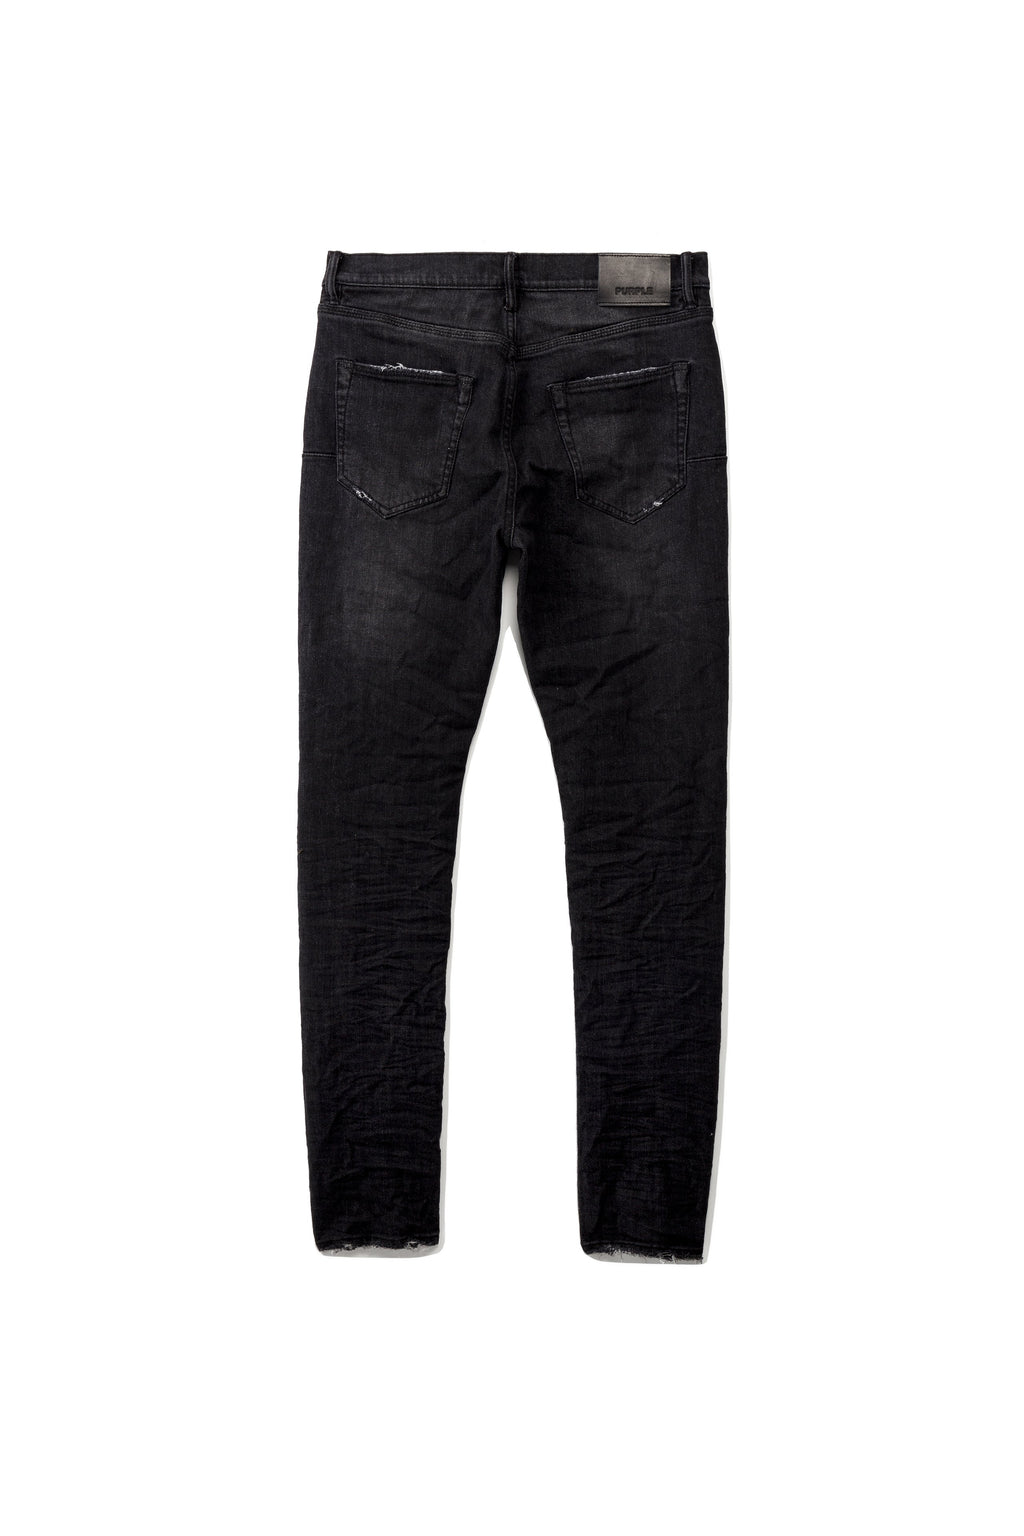 P001 LOW RISE WITH SLIM LEG - BLACK OVER SPRAY